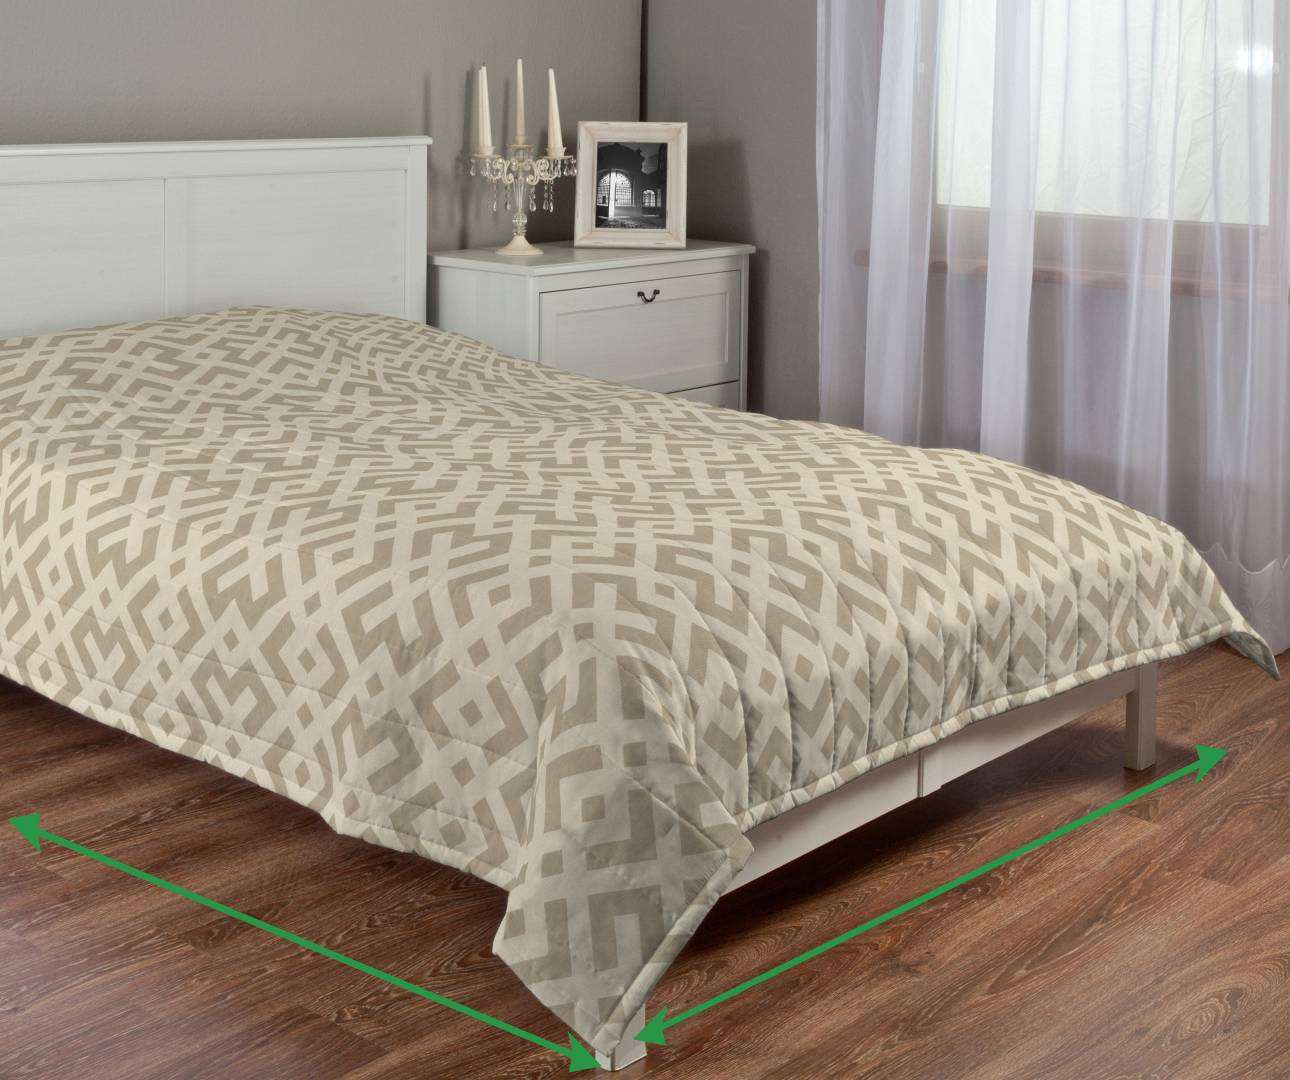 Quilted throw (vertical quilt pattern) in collection Rustica, fabric: 140-59